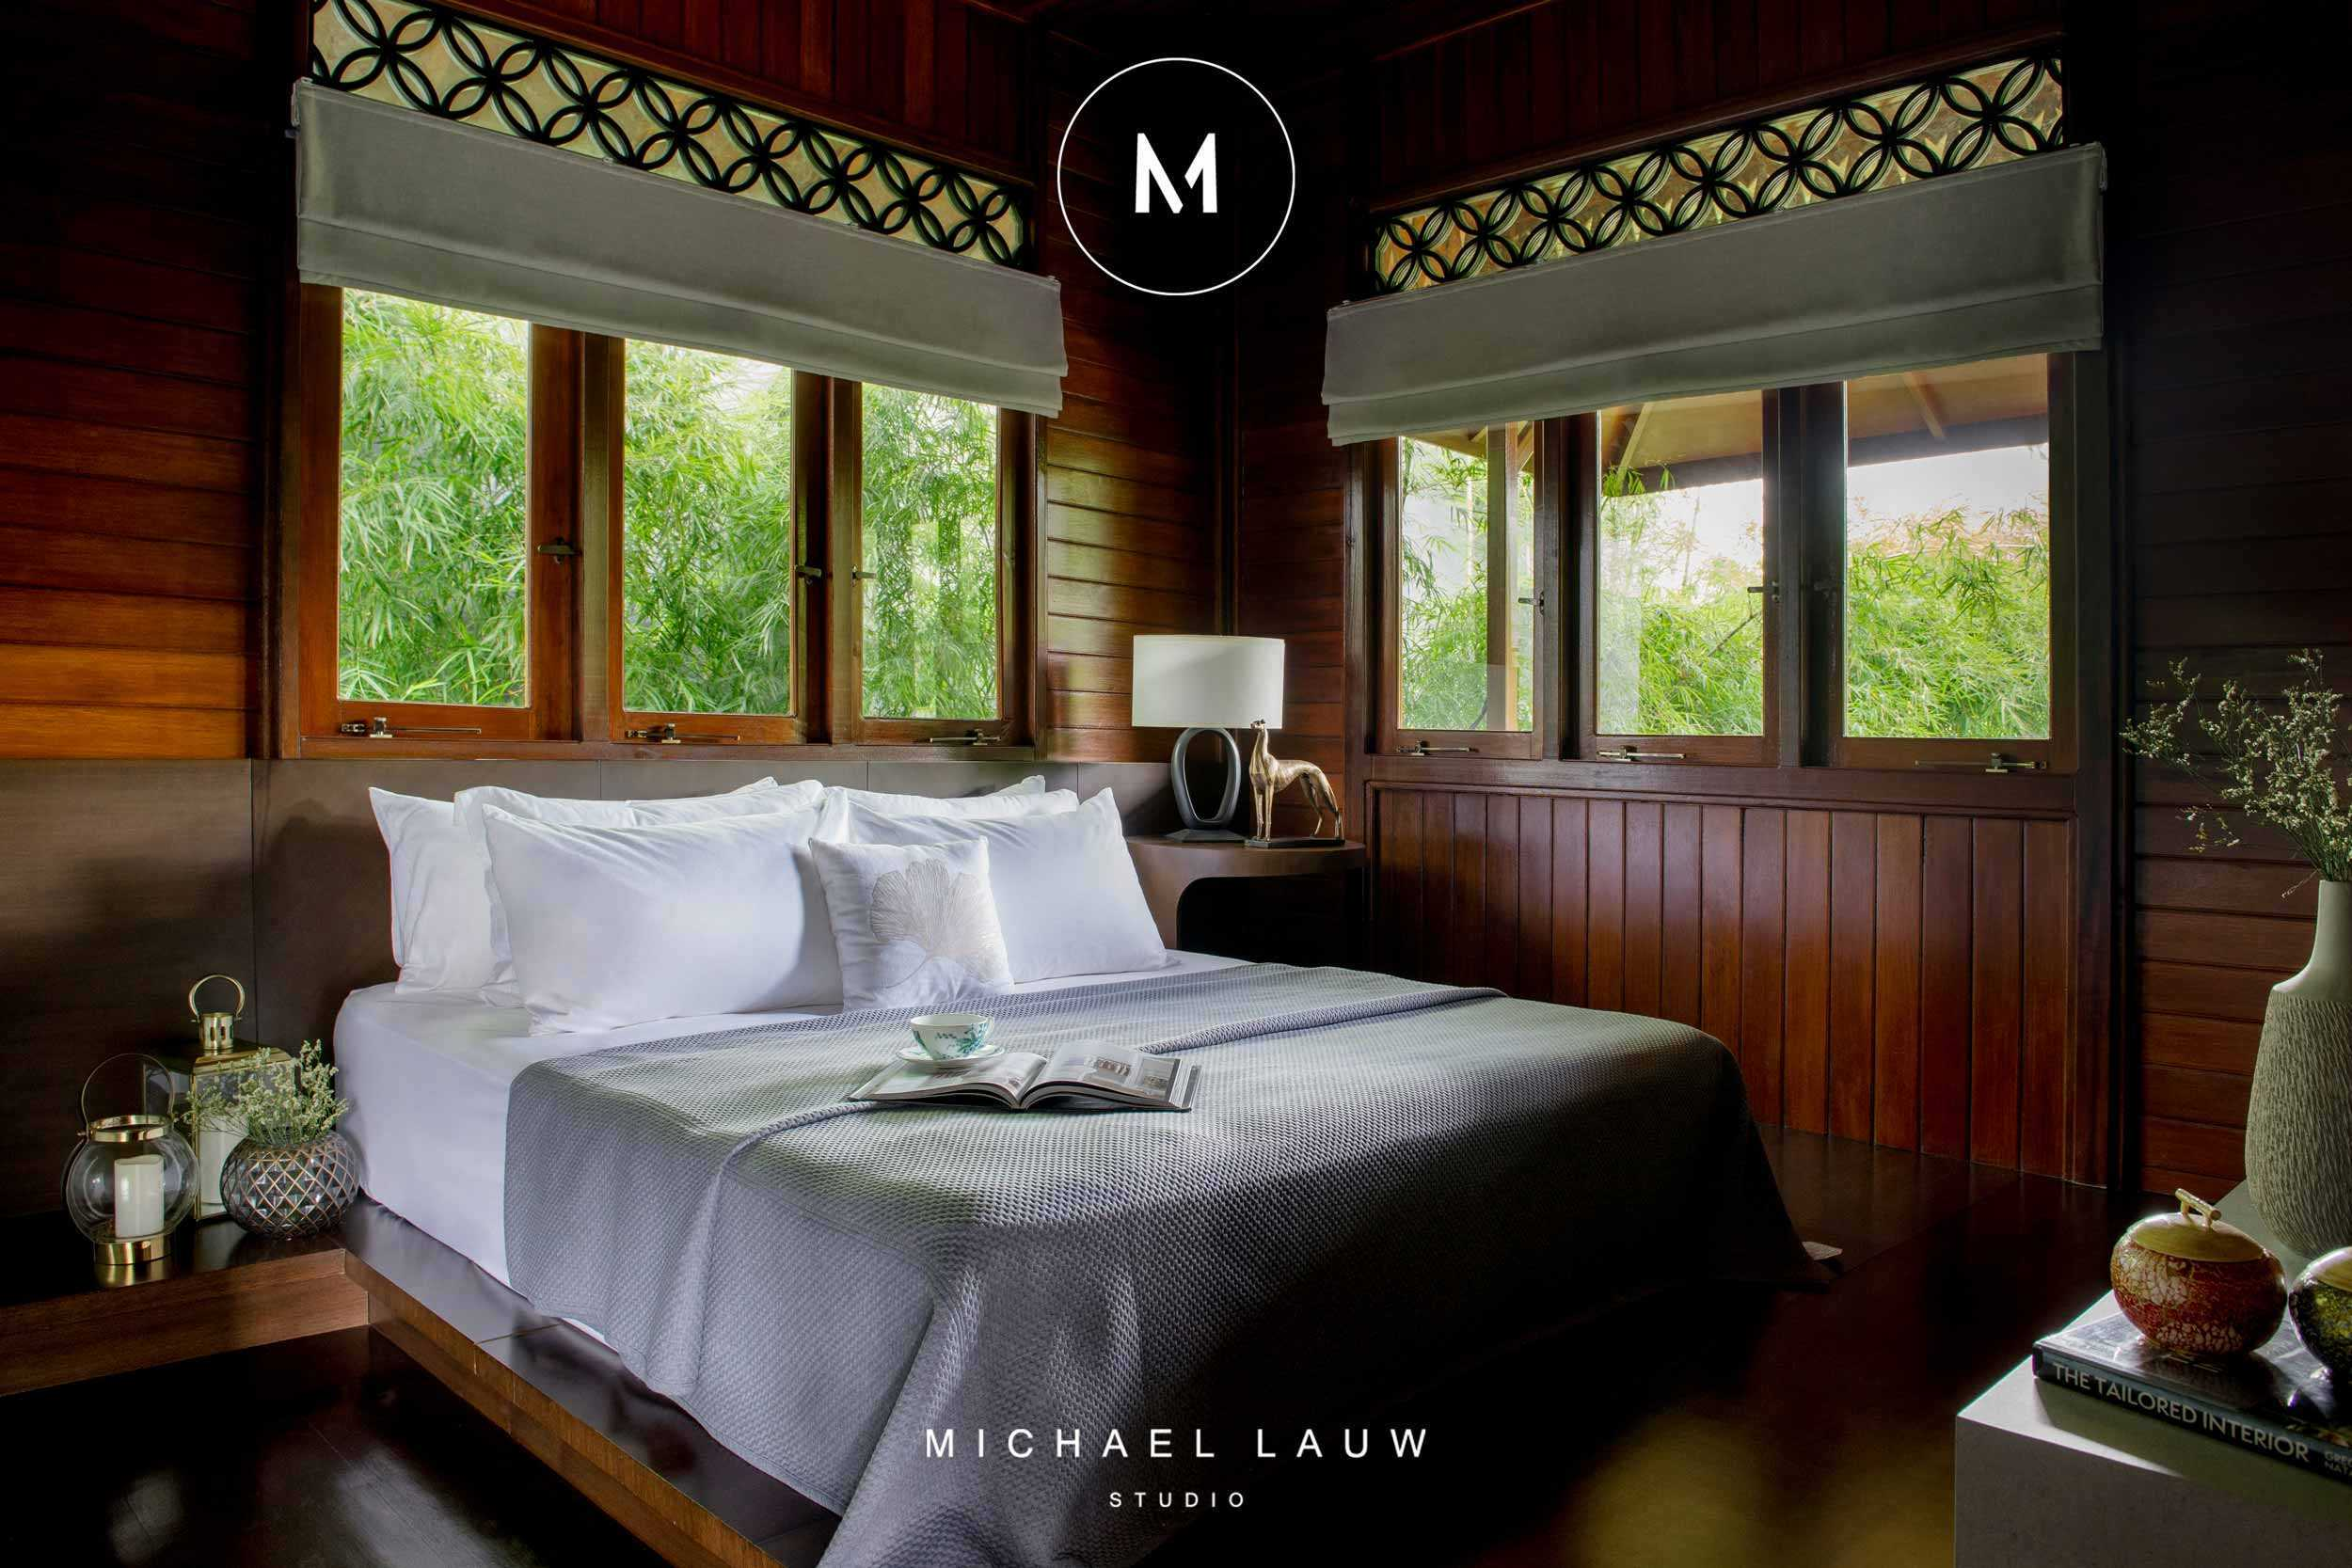 Michael Lauw Studio Darmohill Surabaya, Kota Sby, Jawa Timur, Indonesia Surabaya, Kota Sby, Jawa Timur, Indonesia Michael-Lauw-Studio-Darmohill  <P>Livable Luxury Interior Designed By Michael Lauw From Surabaya Interior Consultant Firm Michael Lauw Studio. Project Located At Surabaya, Indonesia. #michaellauw #michaellauwstudio #interiordesigner #interiorconsultant #interiorsurabaya #designersurabaya #interiordesign</p> 83597